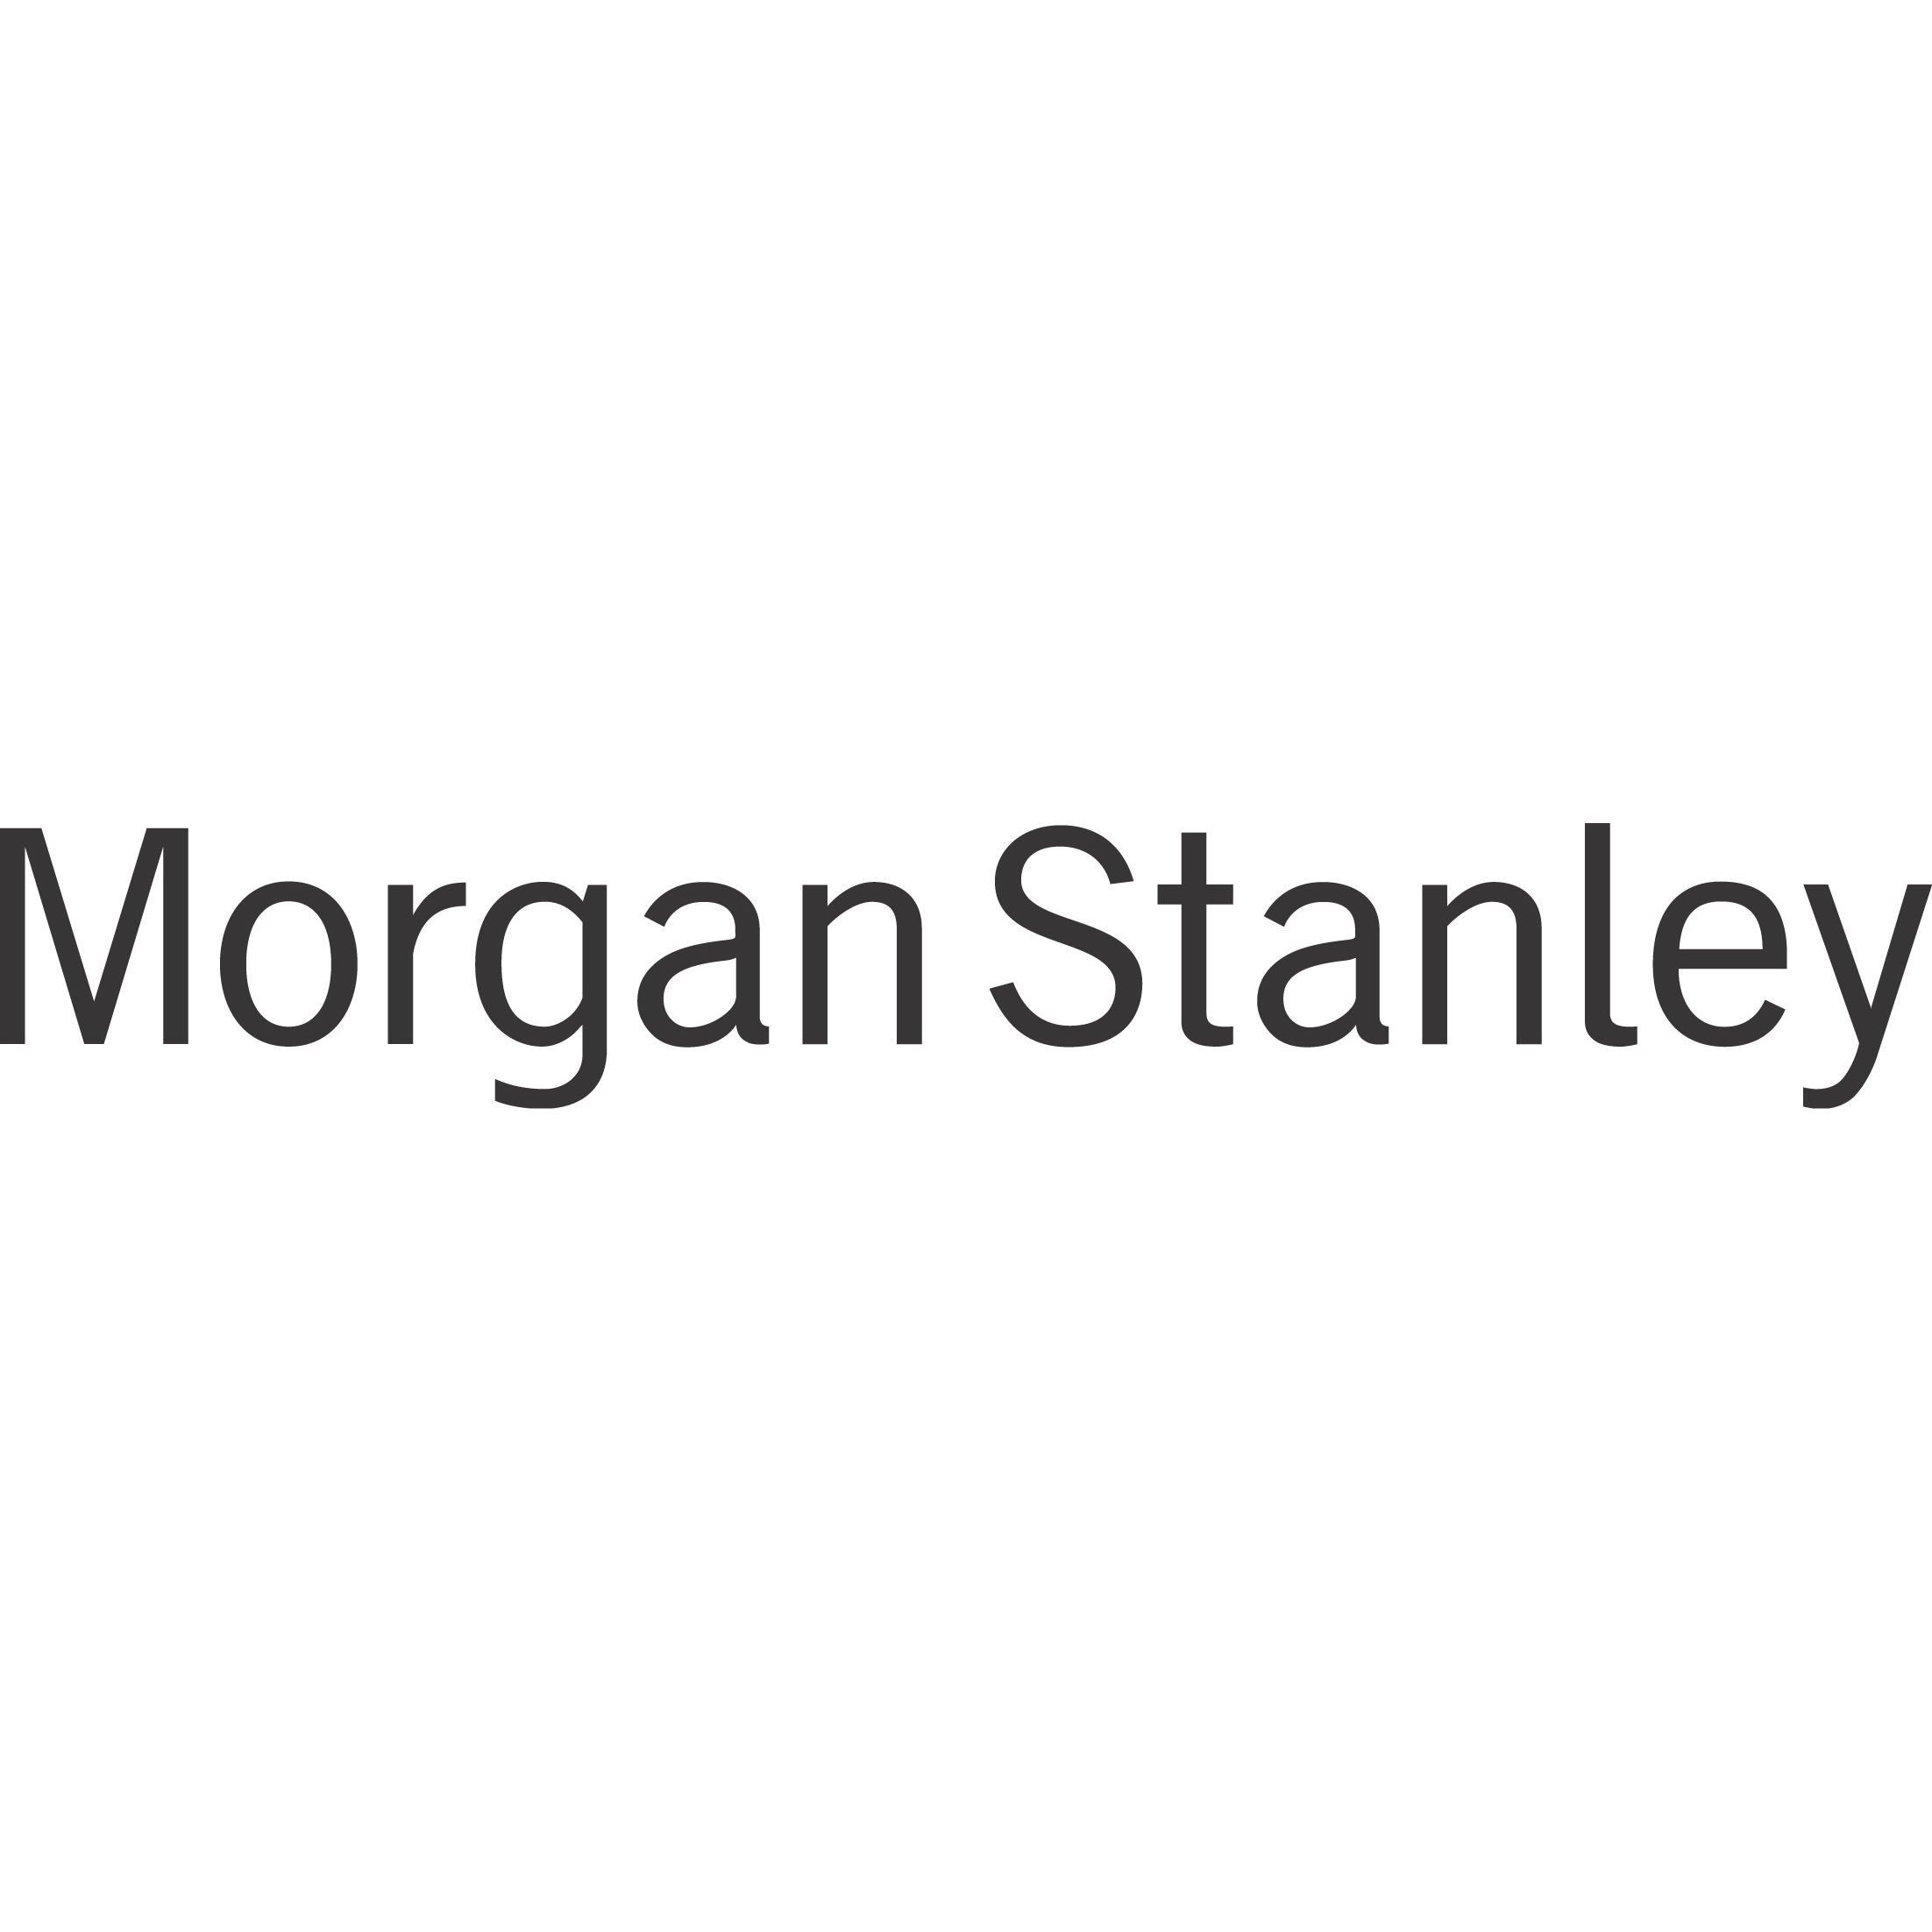 Luis Alfonso - Morgan Stanley | Financial Advisor in Rockville,Maryland